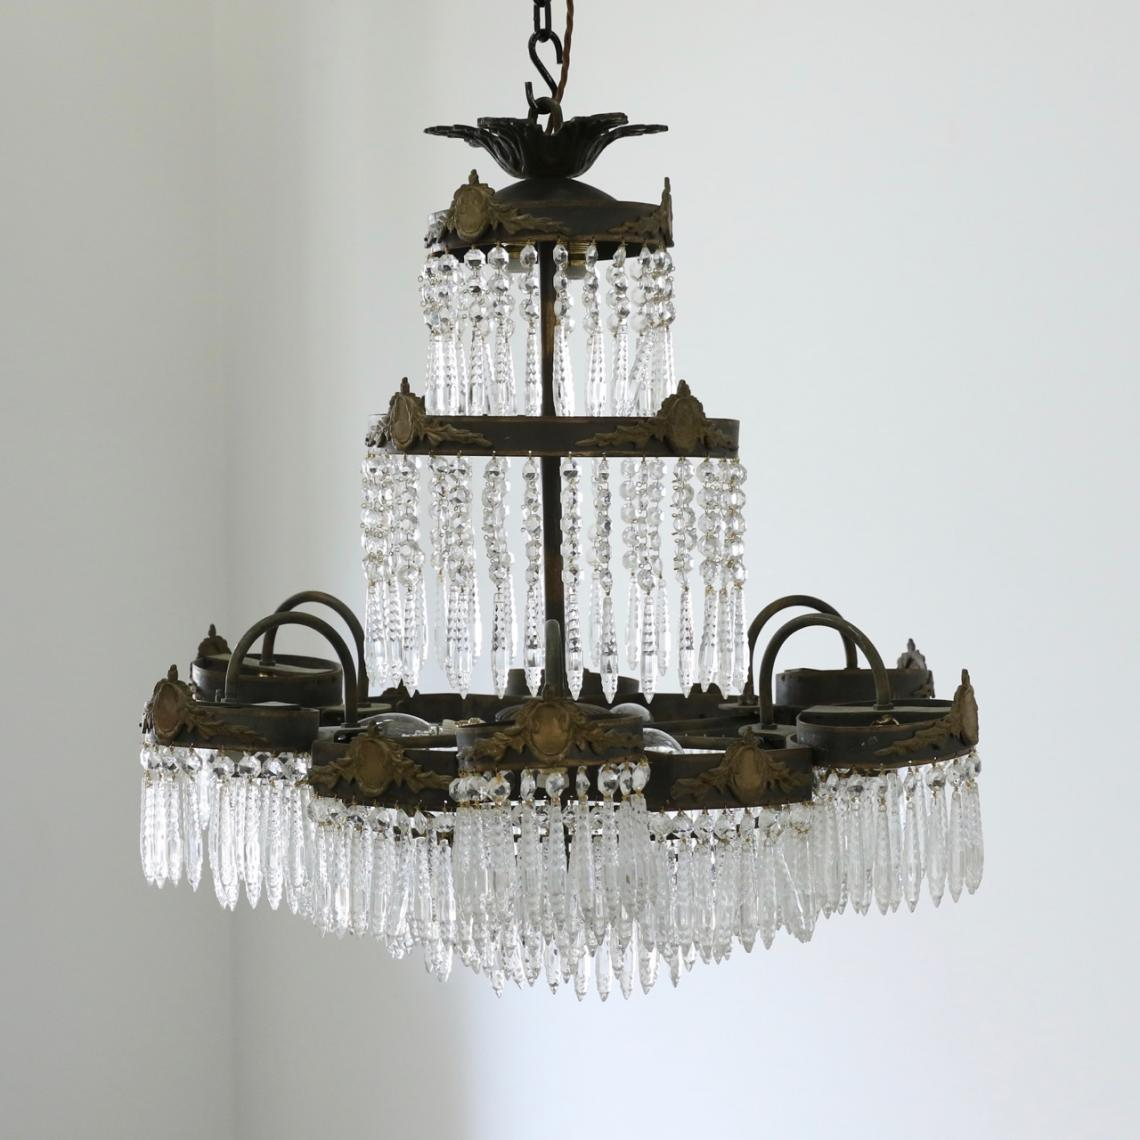 113-42 - French Chandelier